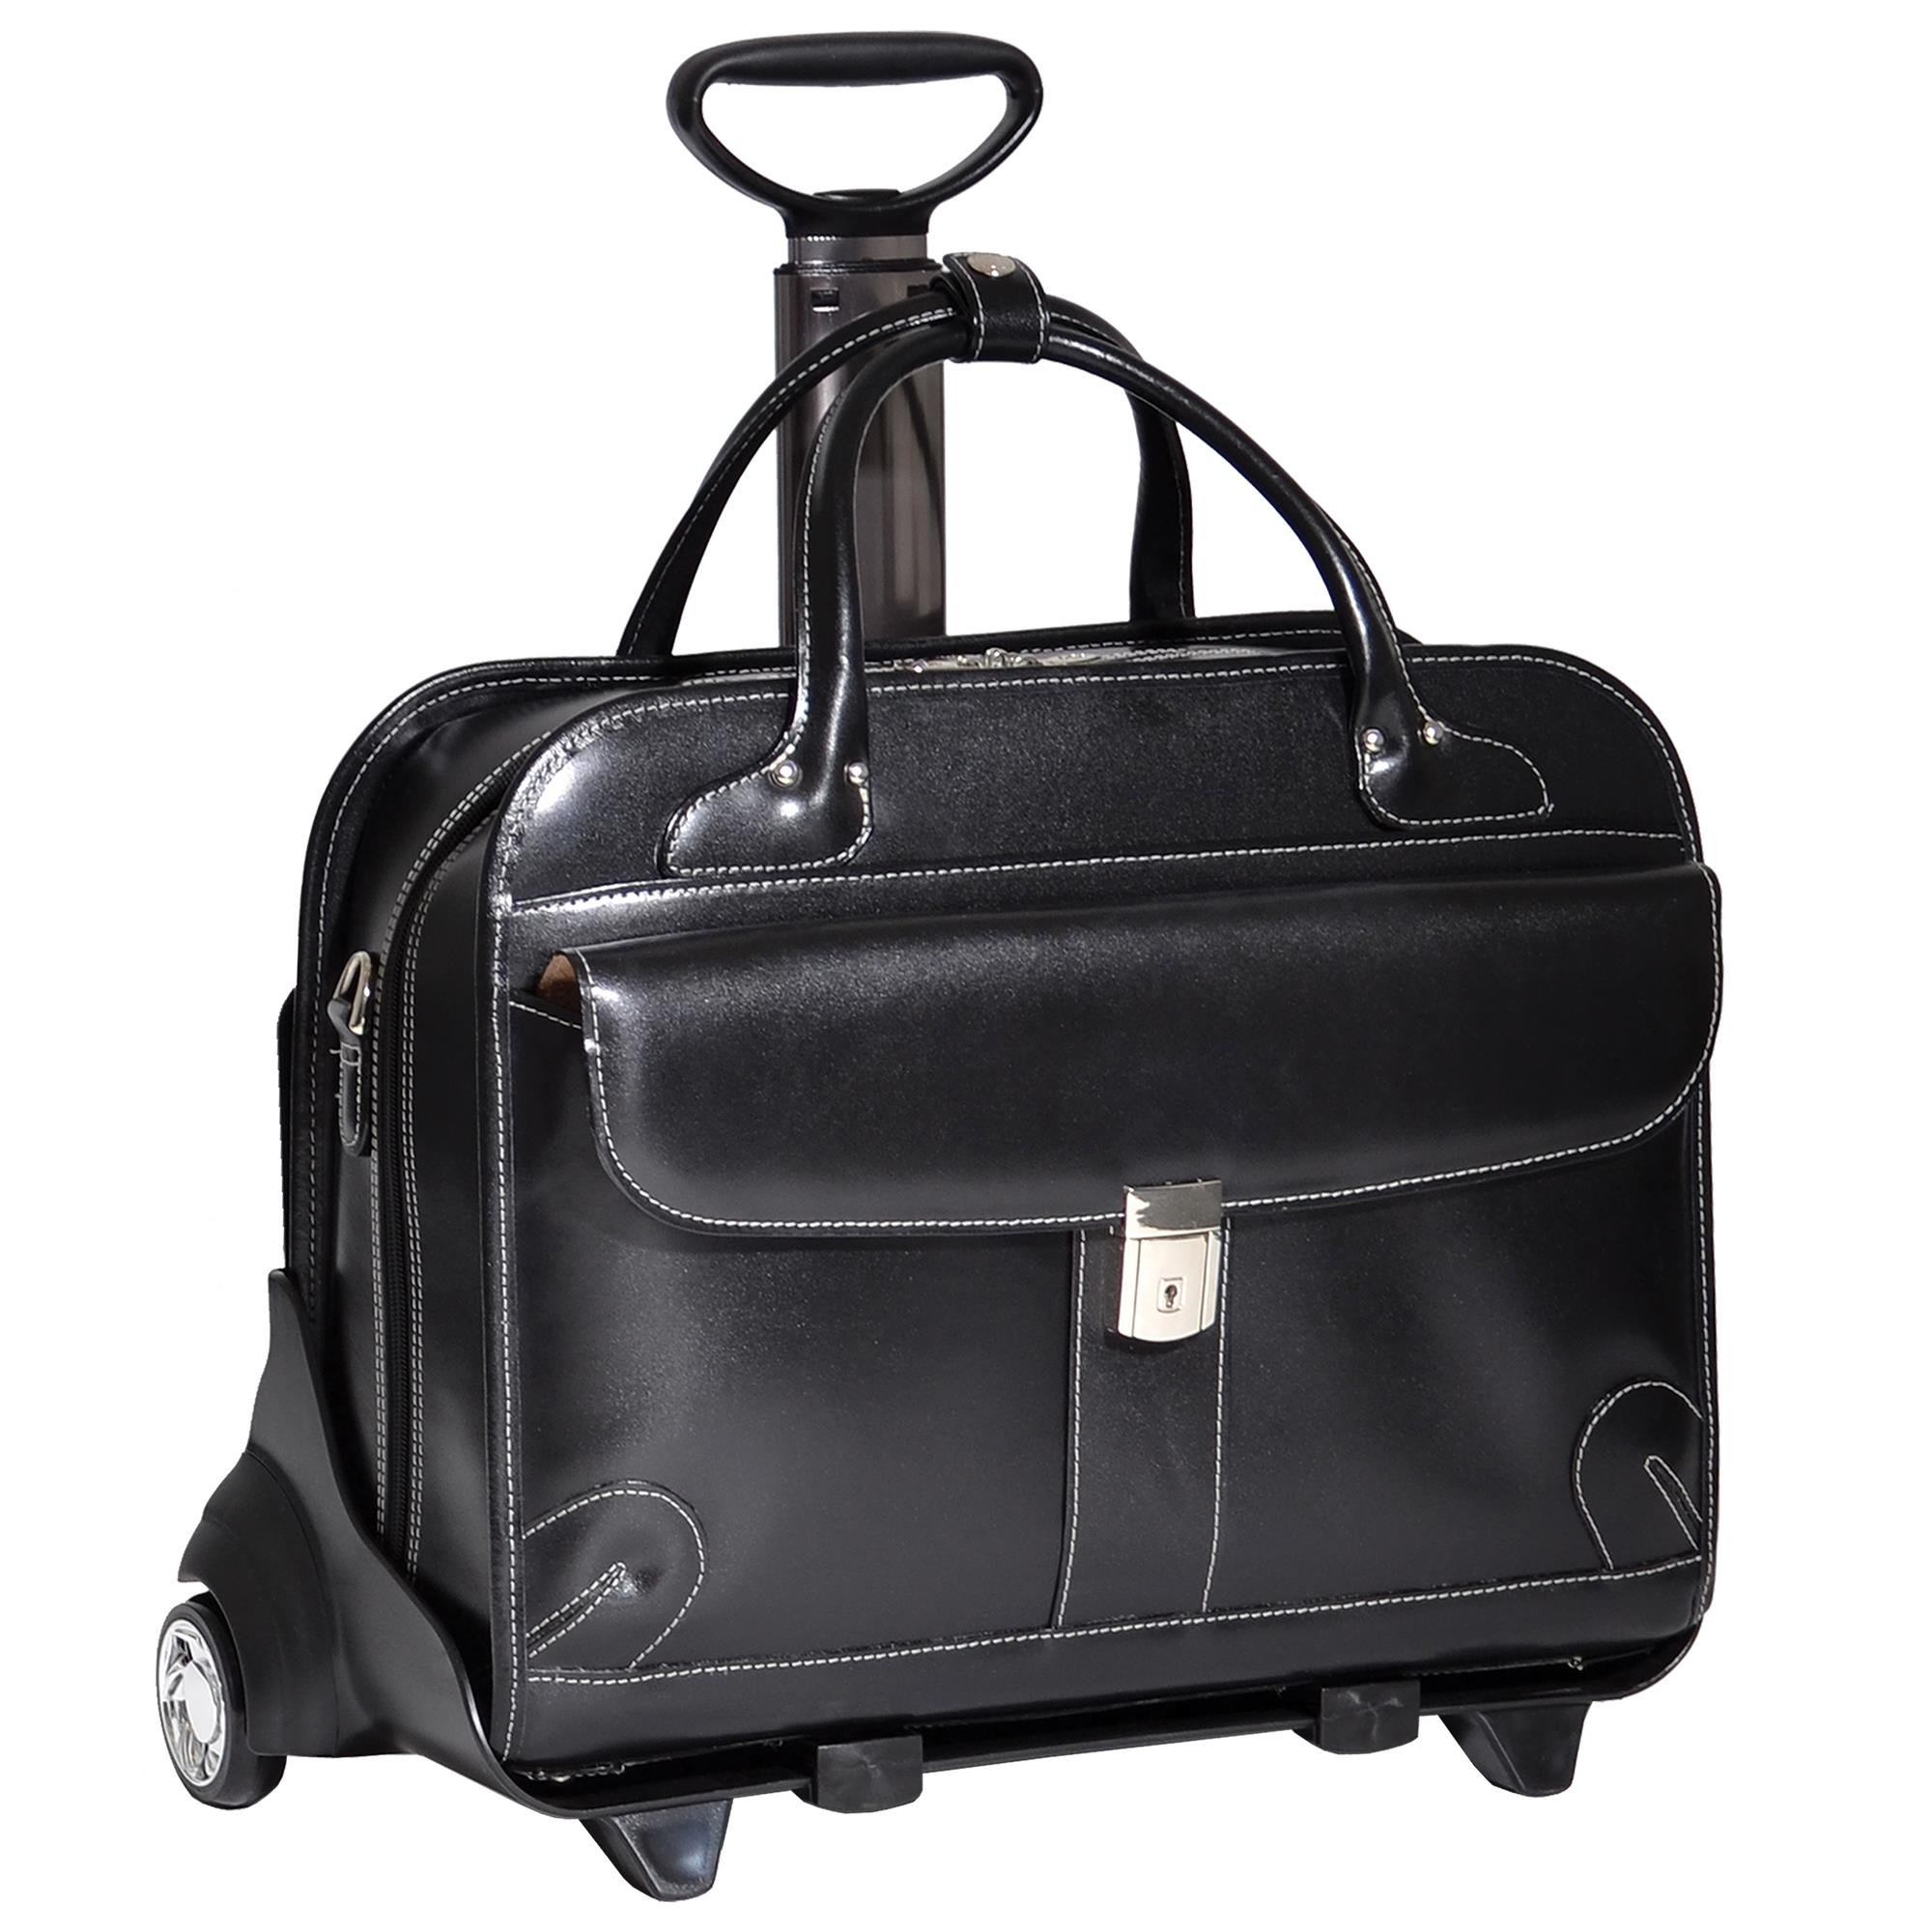 McKleinUSA LAKEWOOD 96615 Black Leather Fly-Through Checkpoint-Friendly Detachable-Wheeled Ladies' Briefcase by McKleinUSA